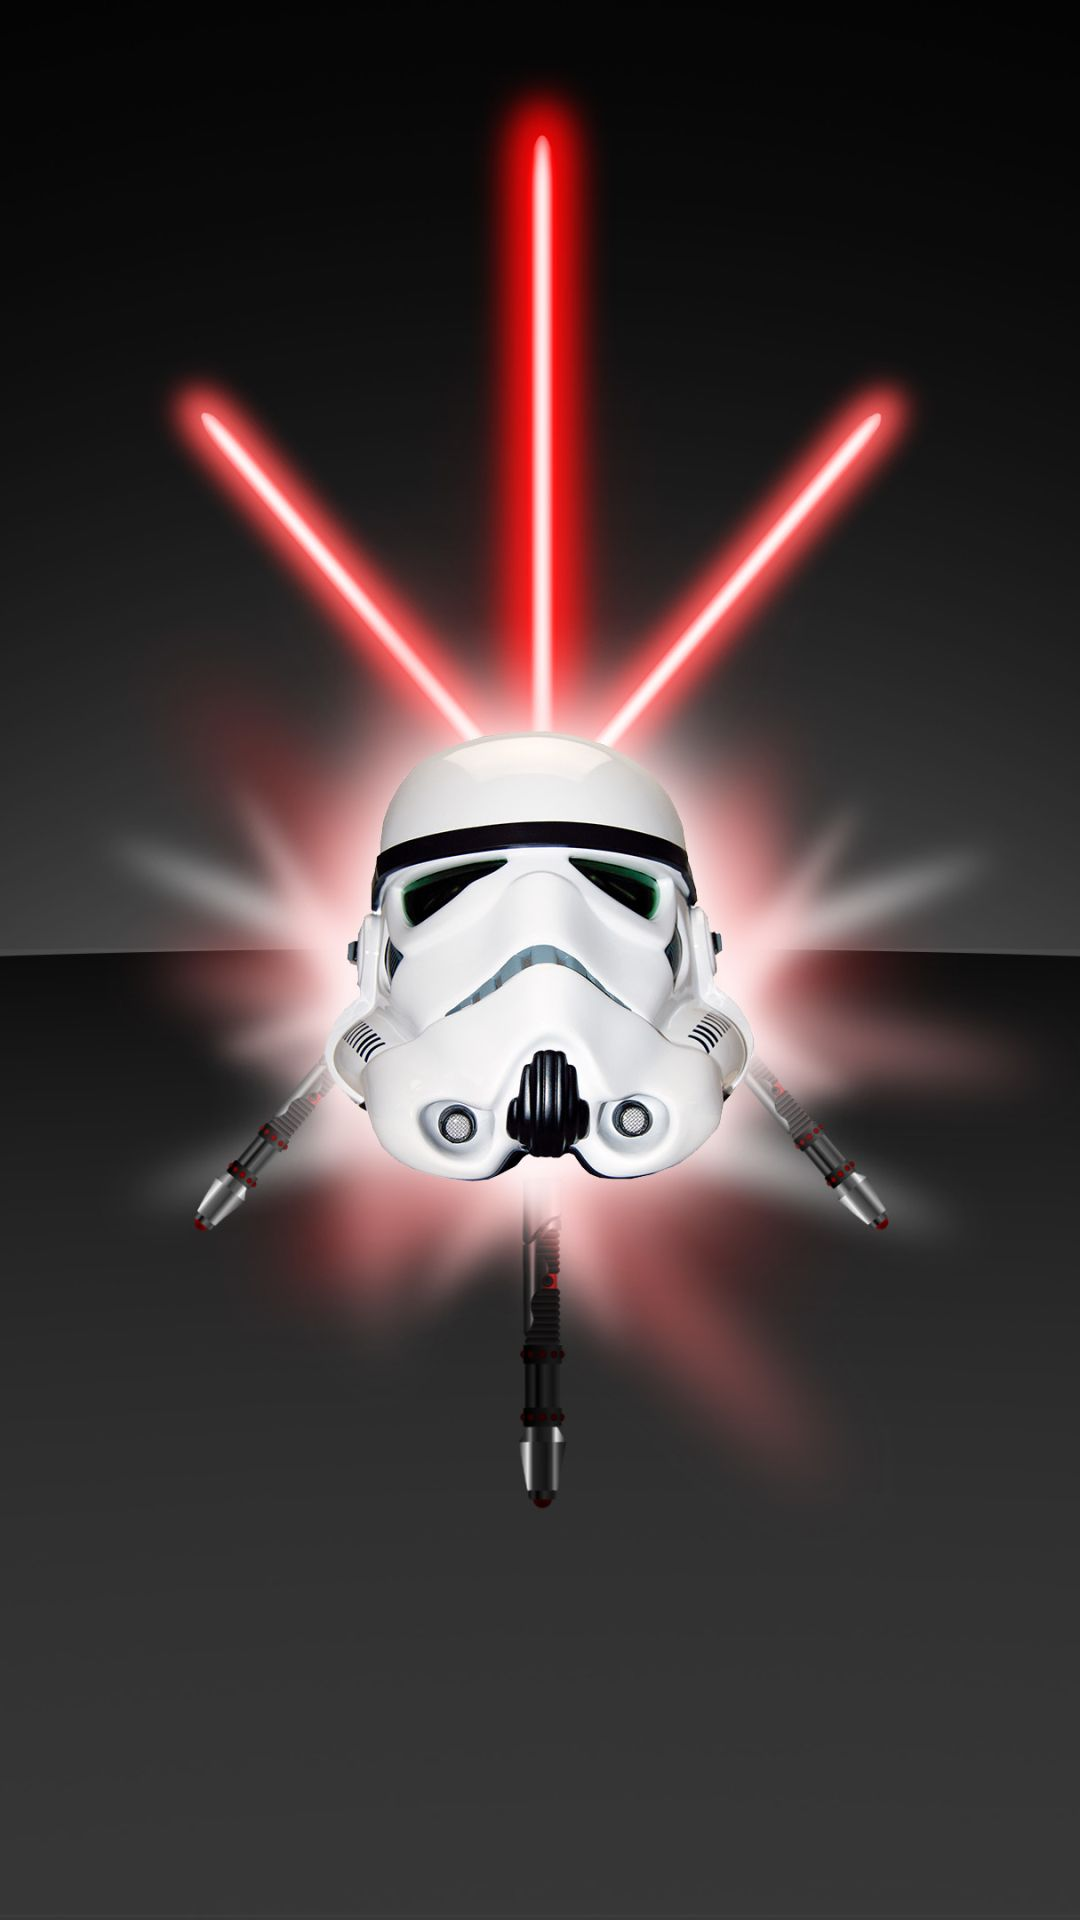 Download This Wallpaper Moviestar Wars For All Your Phones And